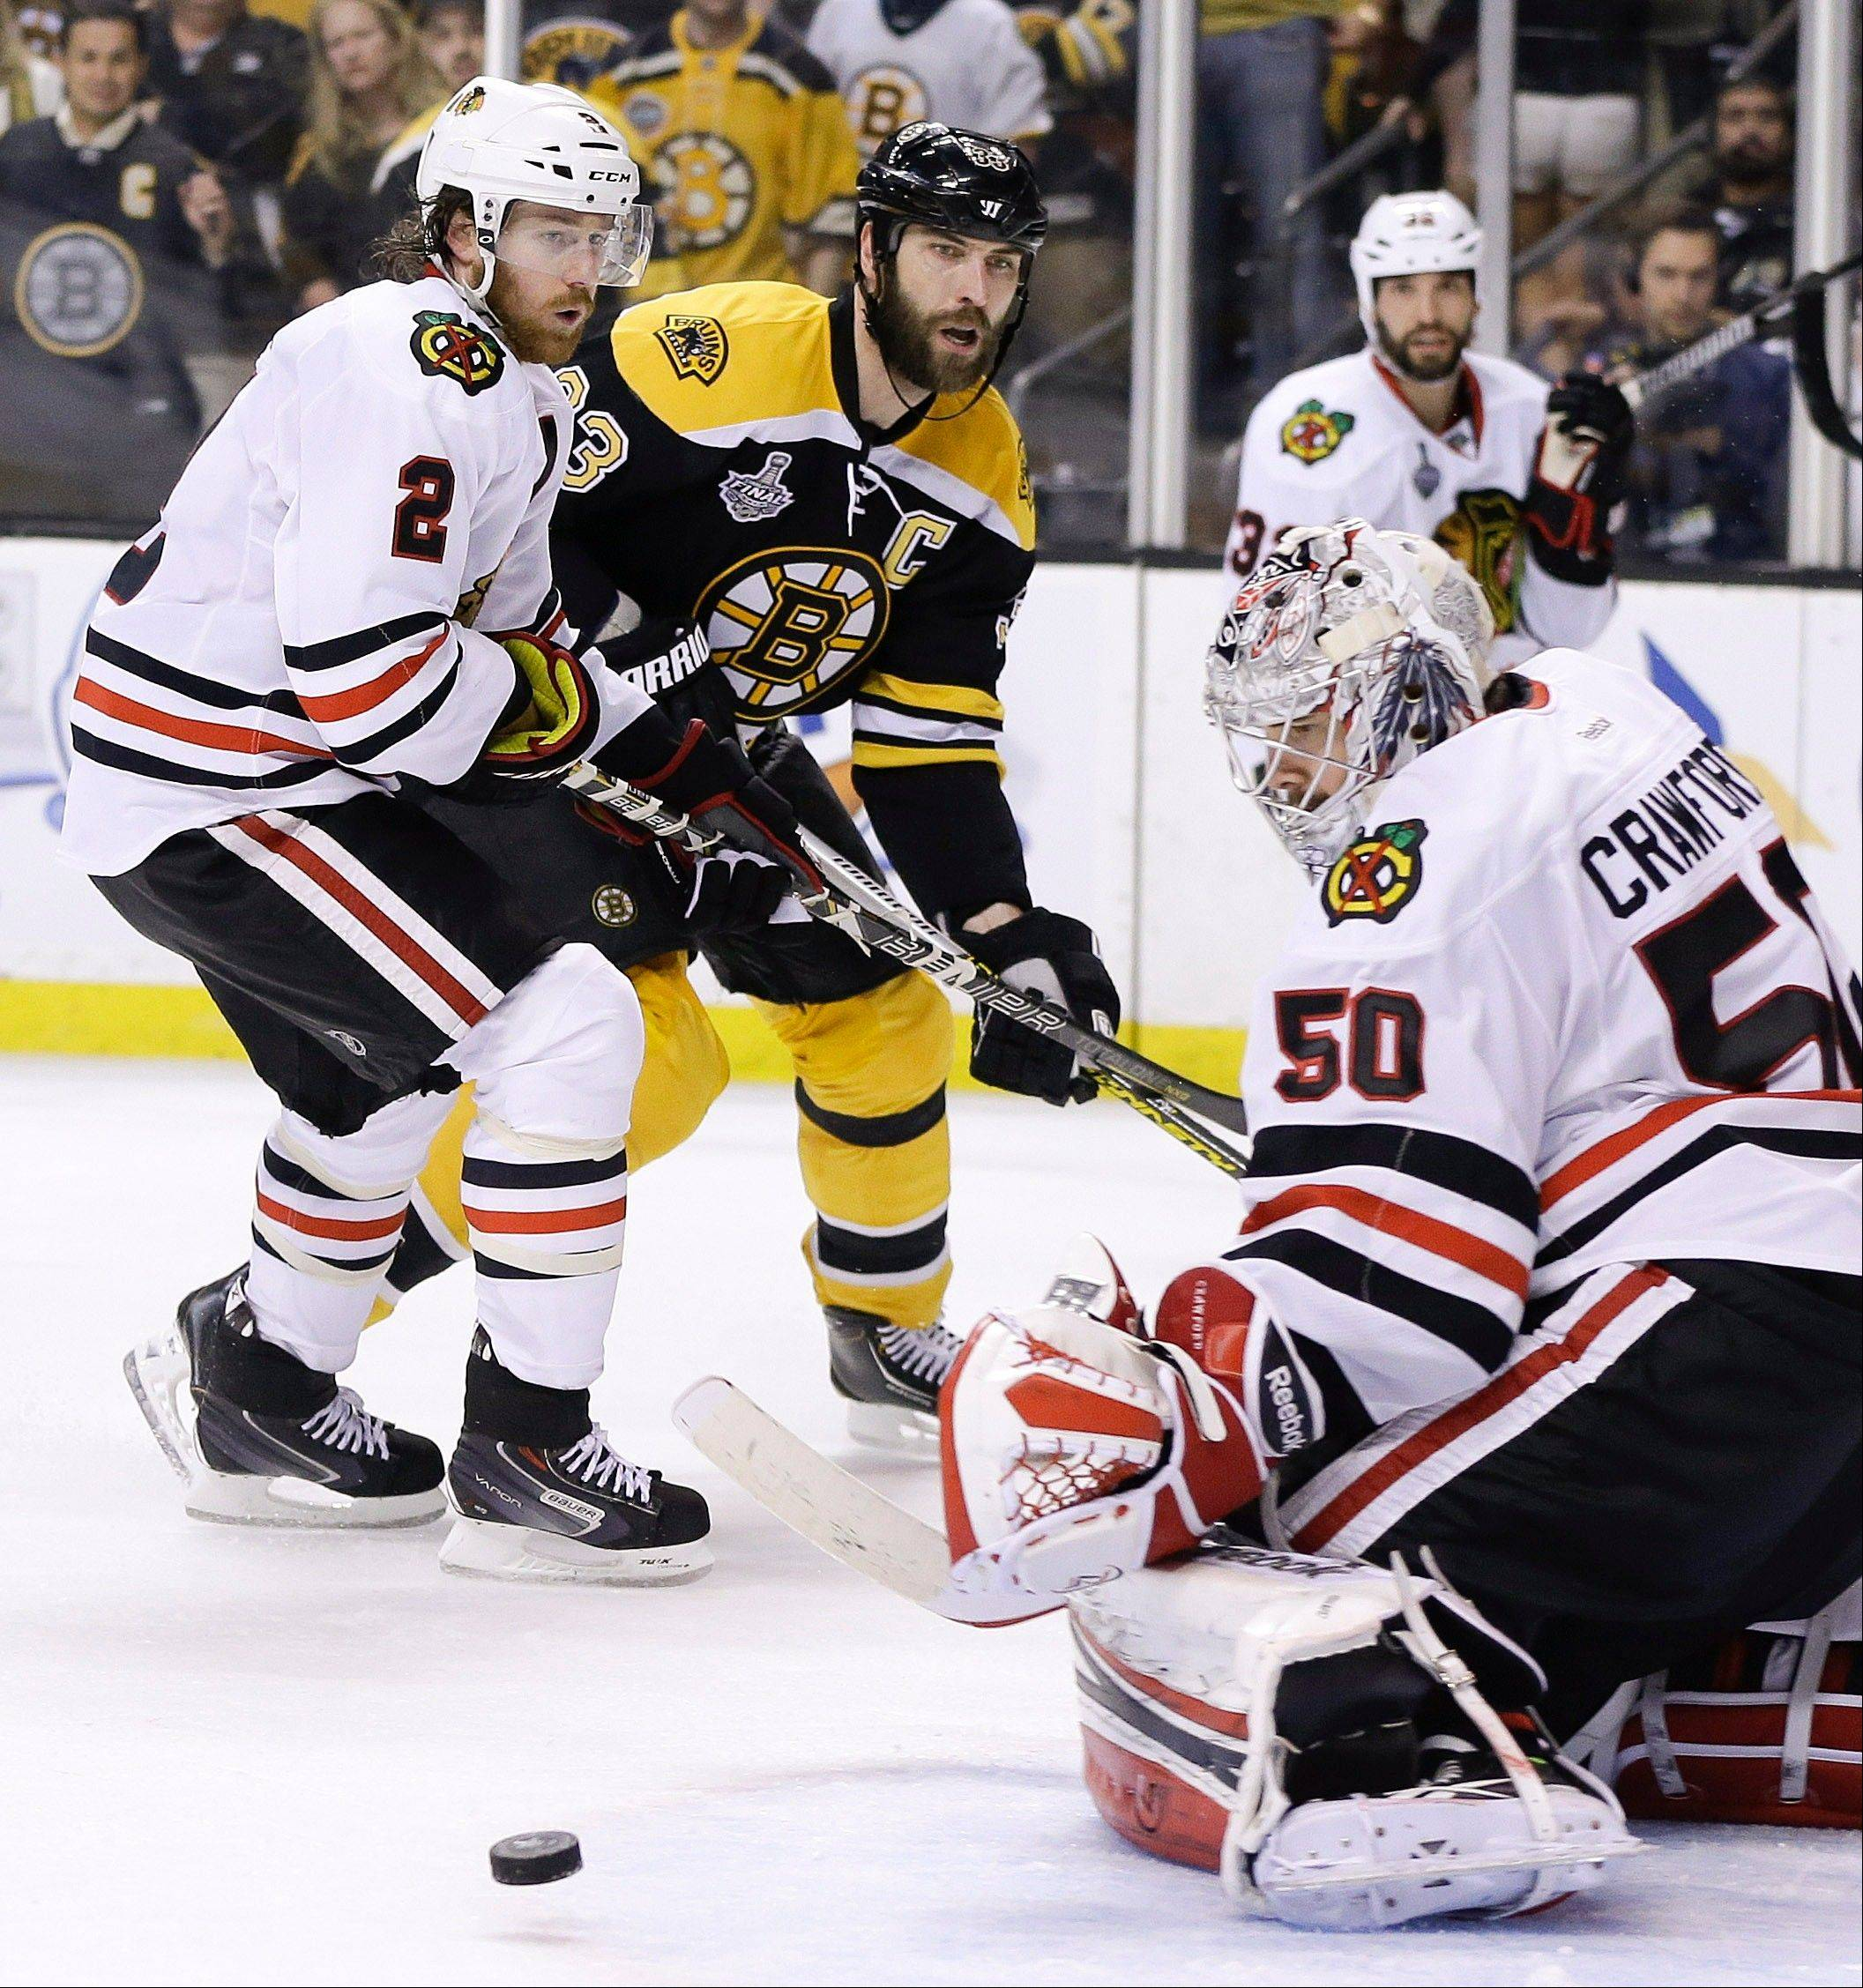 Chicago Blackhawks goalie Corey Crawford (50) turns the puck aside in front of Boston Bruins defenseman Zdeno Chara (33), of Slovakia, and Blackhawks defenseman Duncan Keith (2) during the second period in Game 4 of the NHL hockey Stanley Cup Finals.